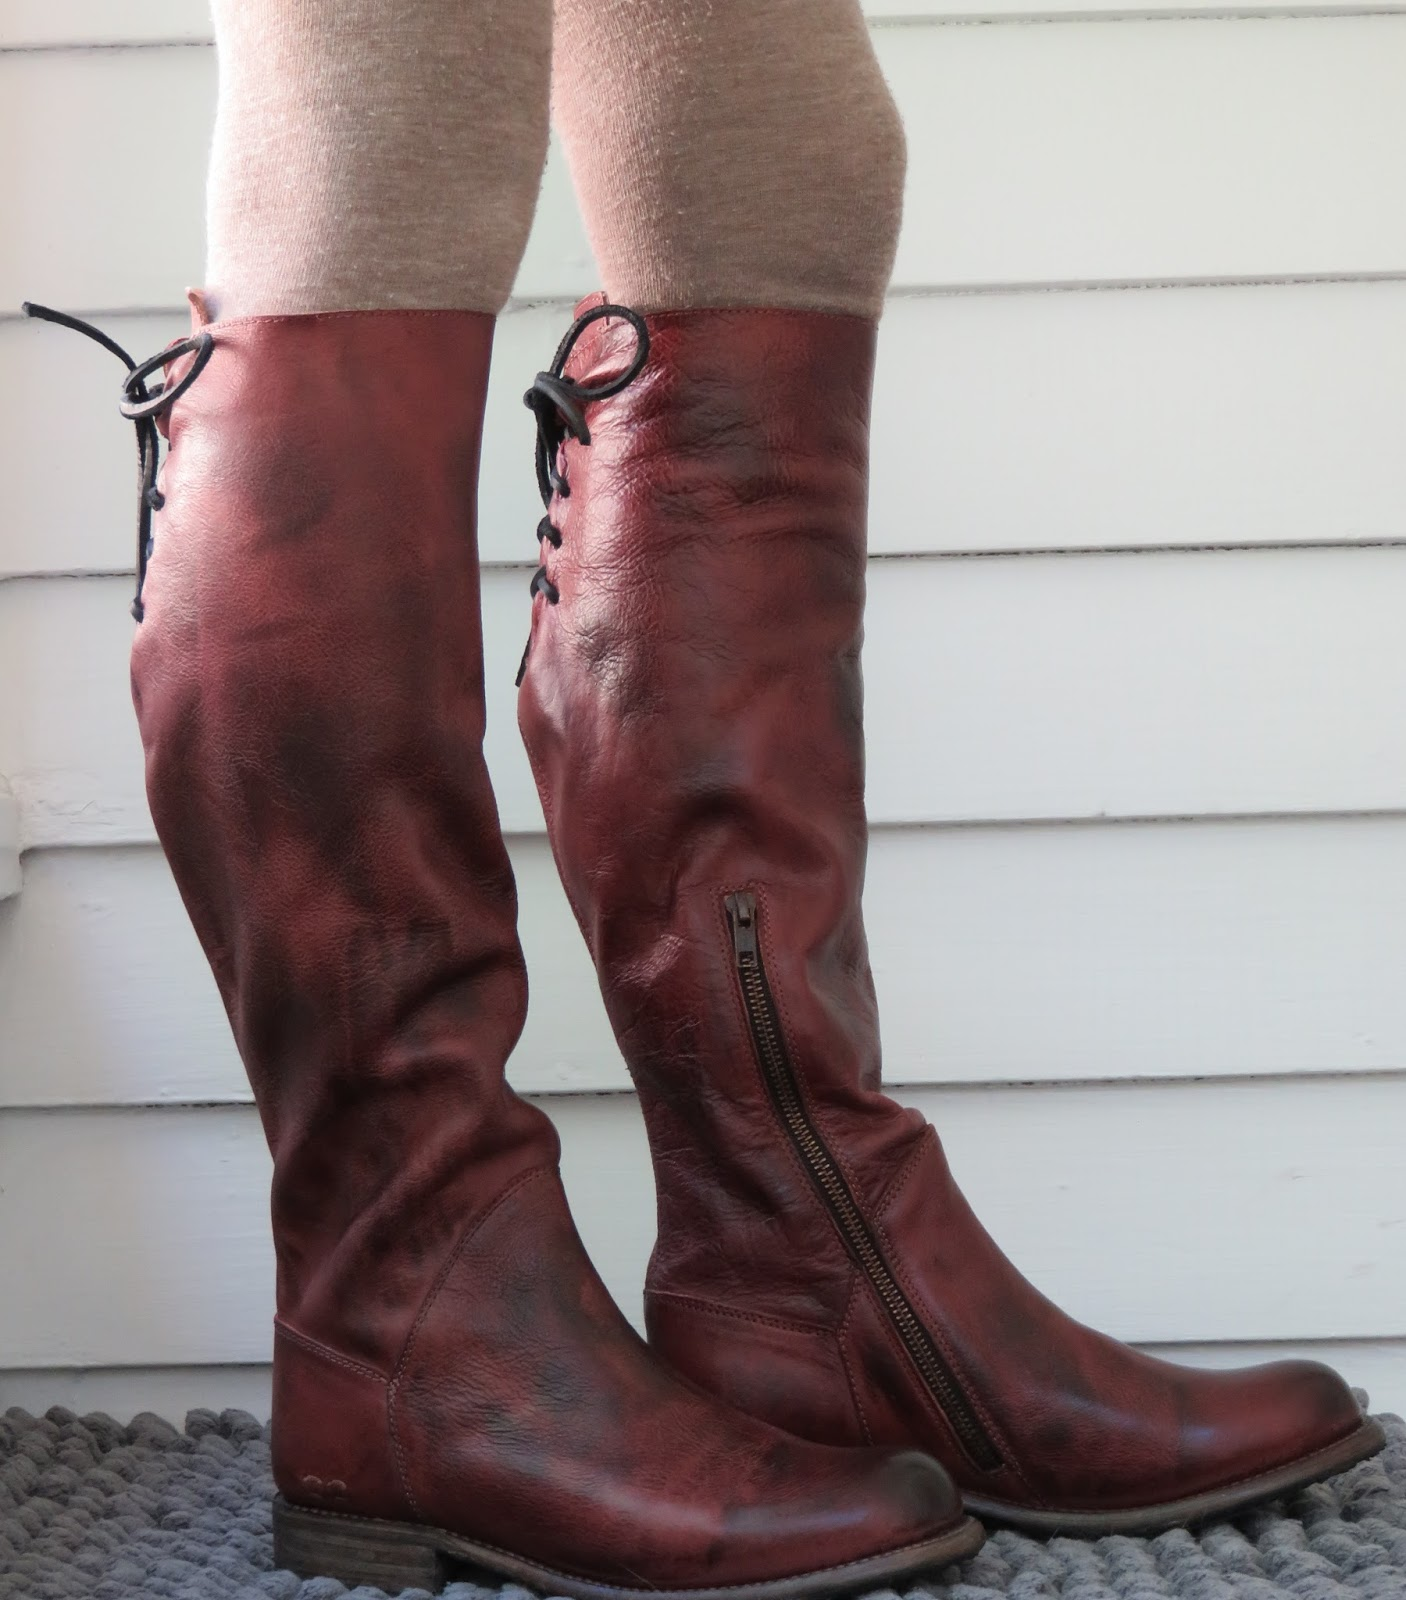 Howdy Slim! Riding Boots for Thin Calves